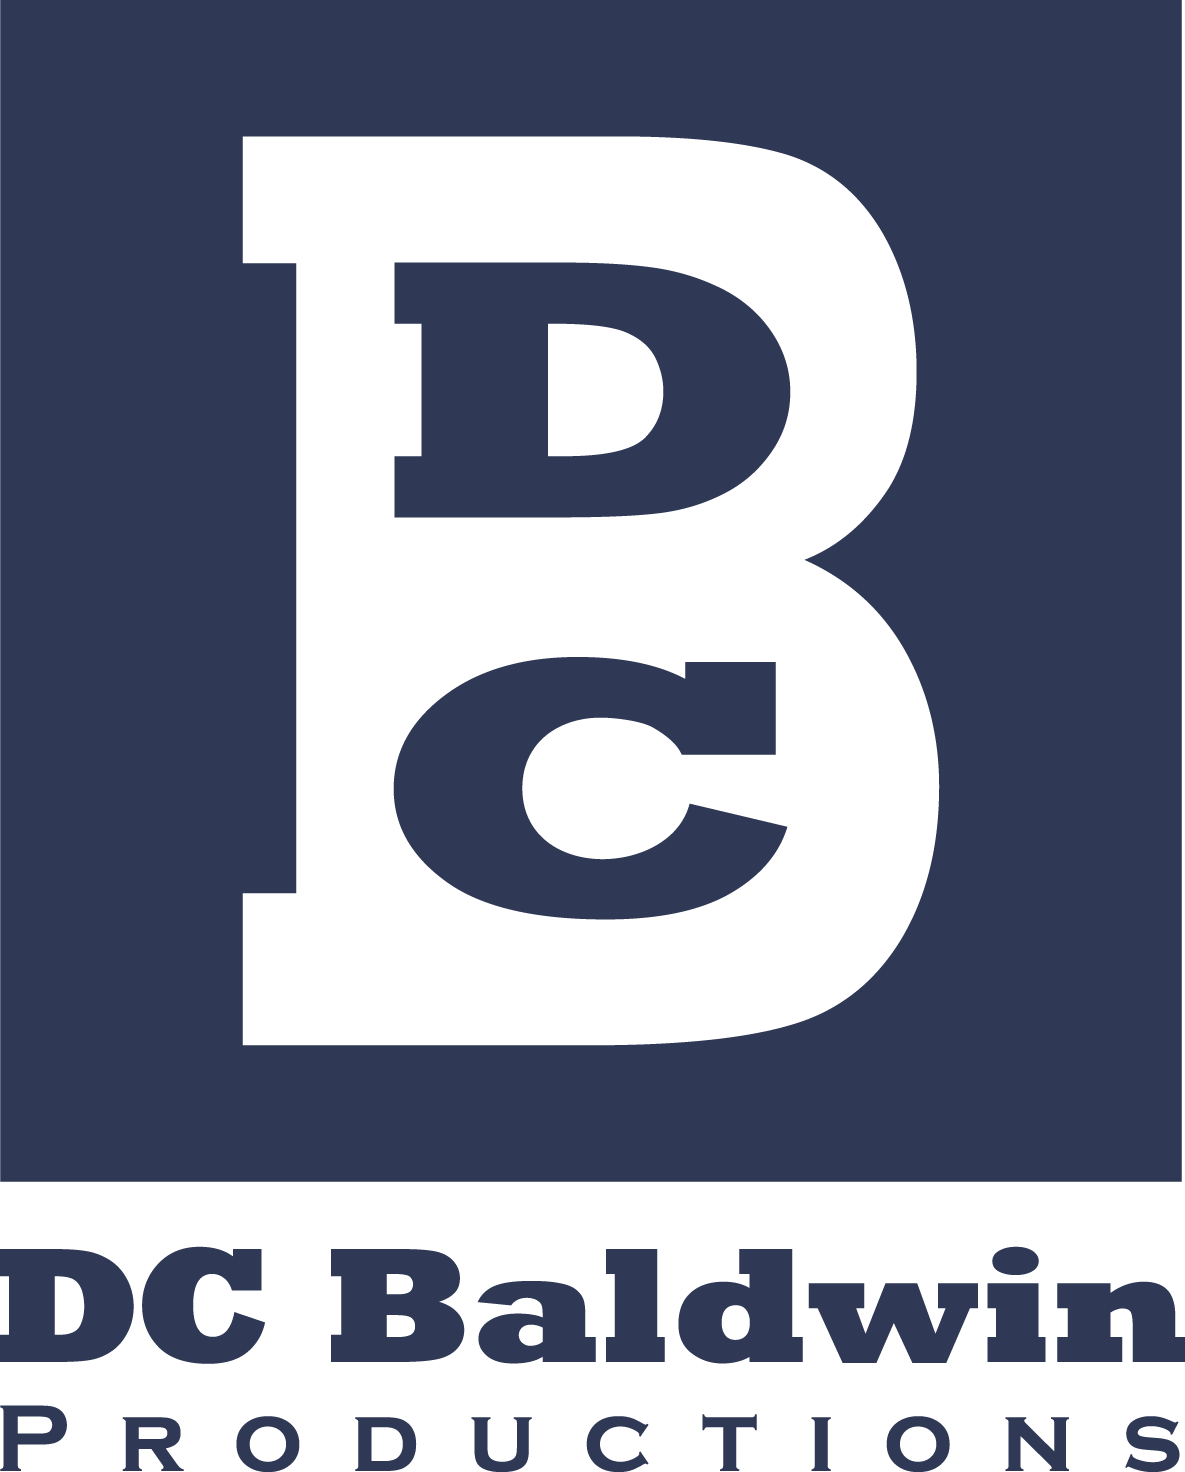 DC Baldwin Productions